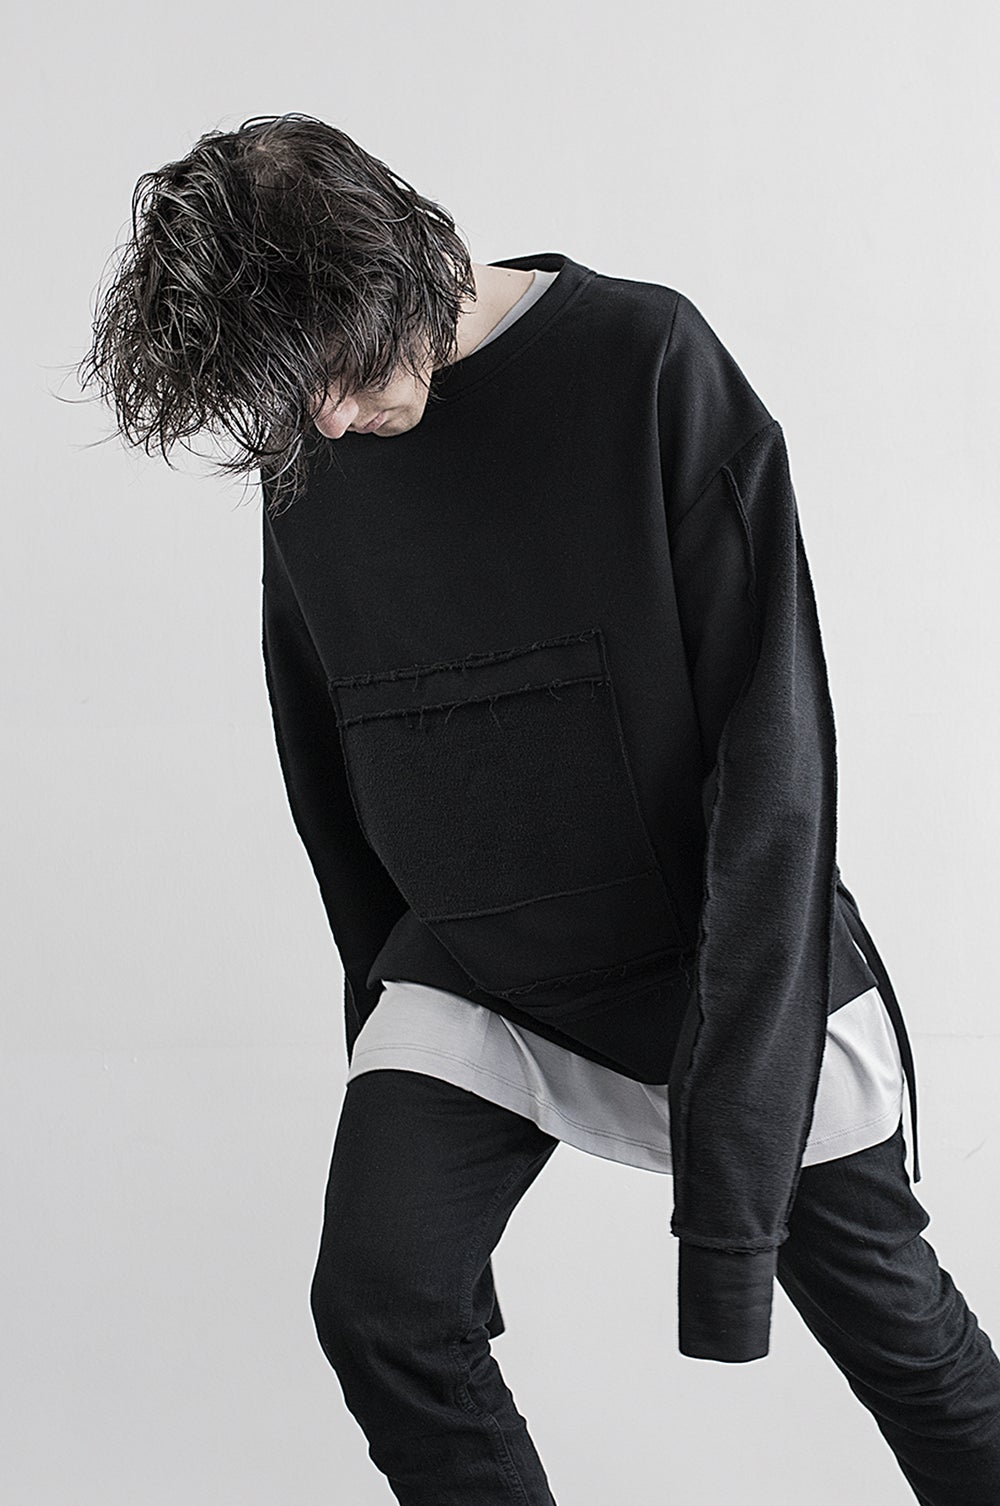 Image of Urban Flavours Mental Crewneck Black